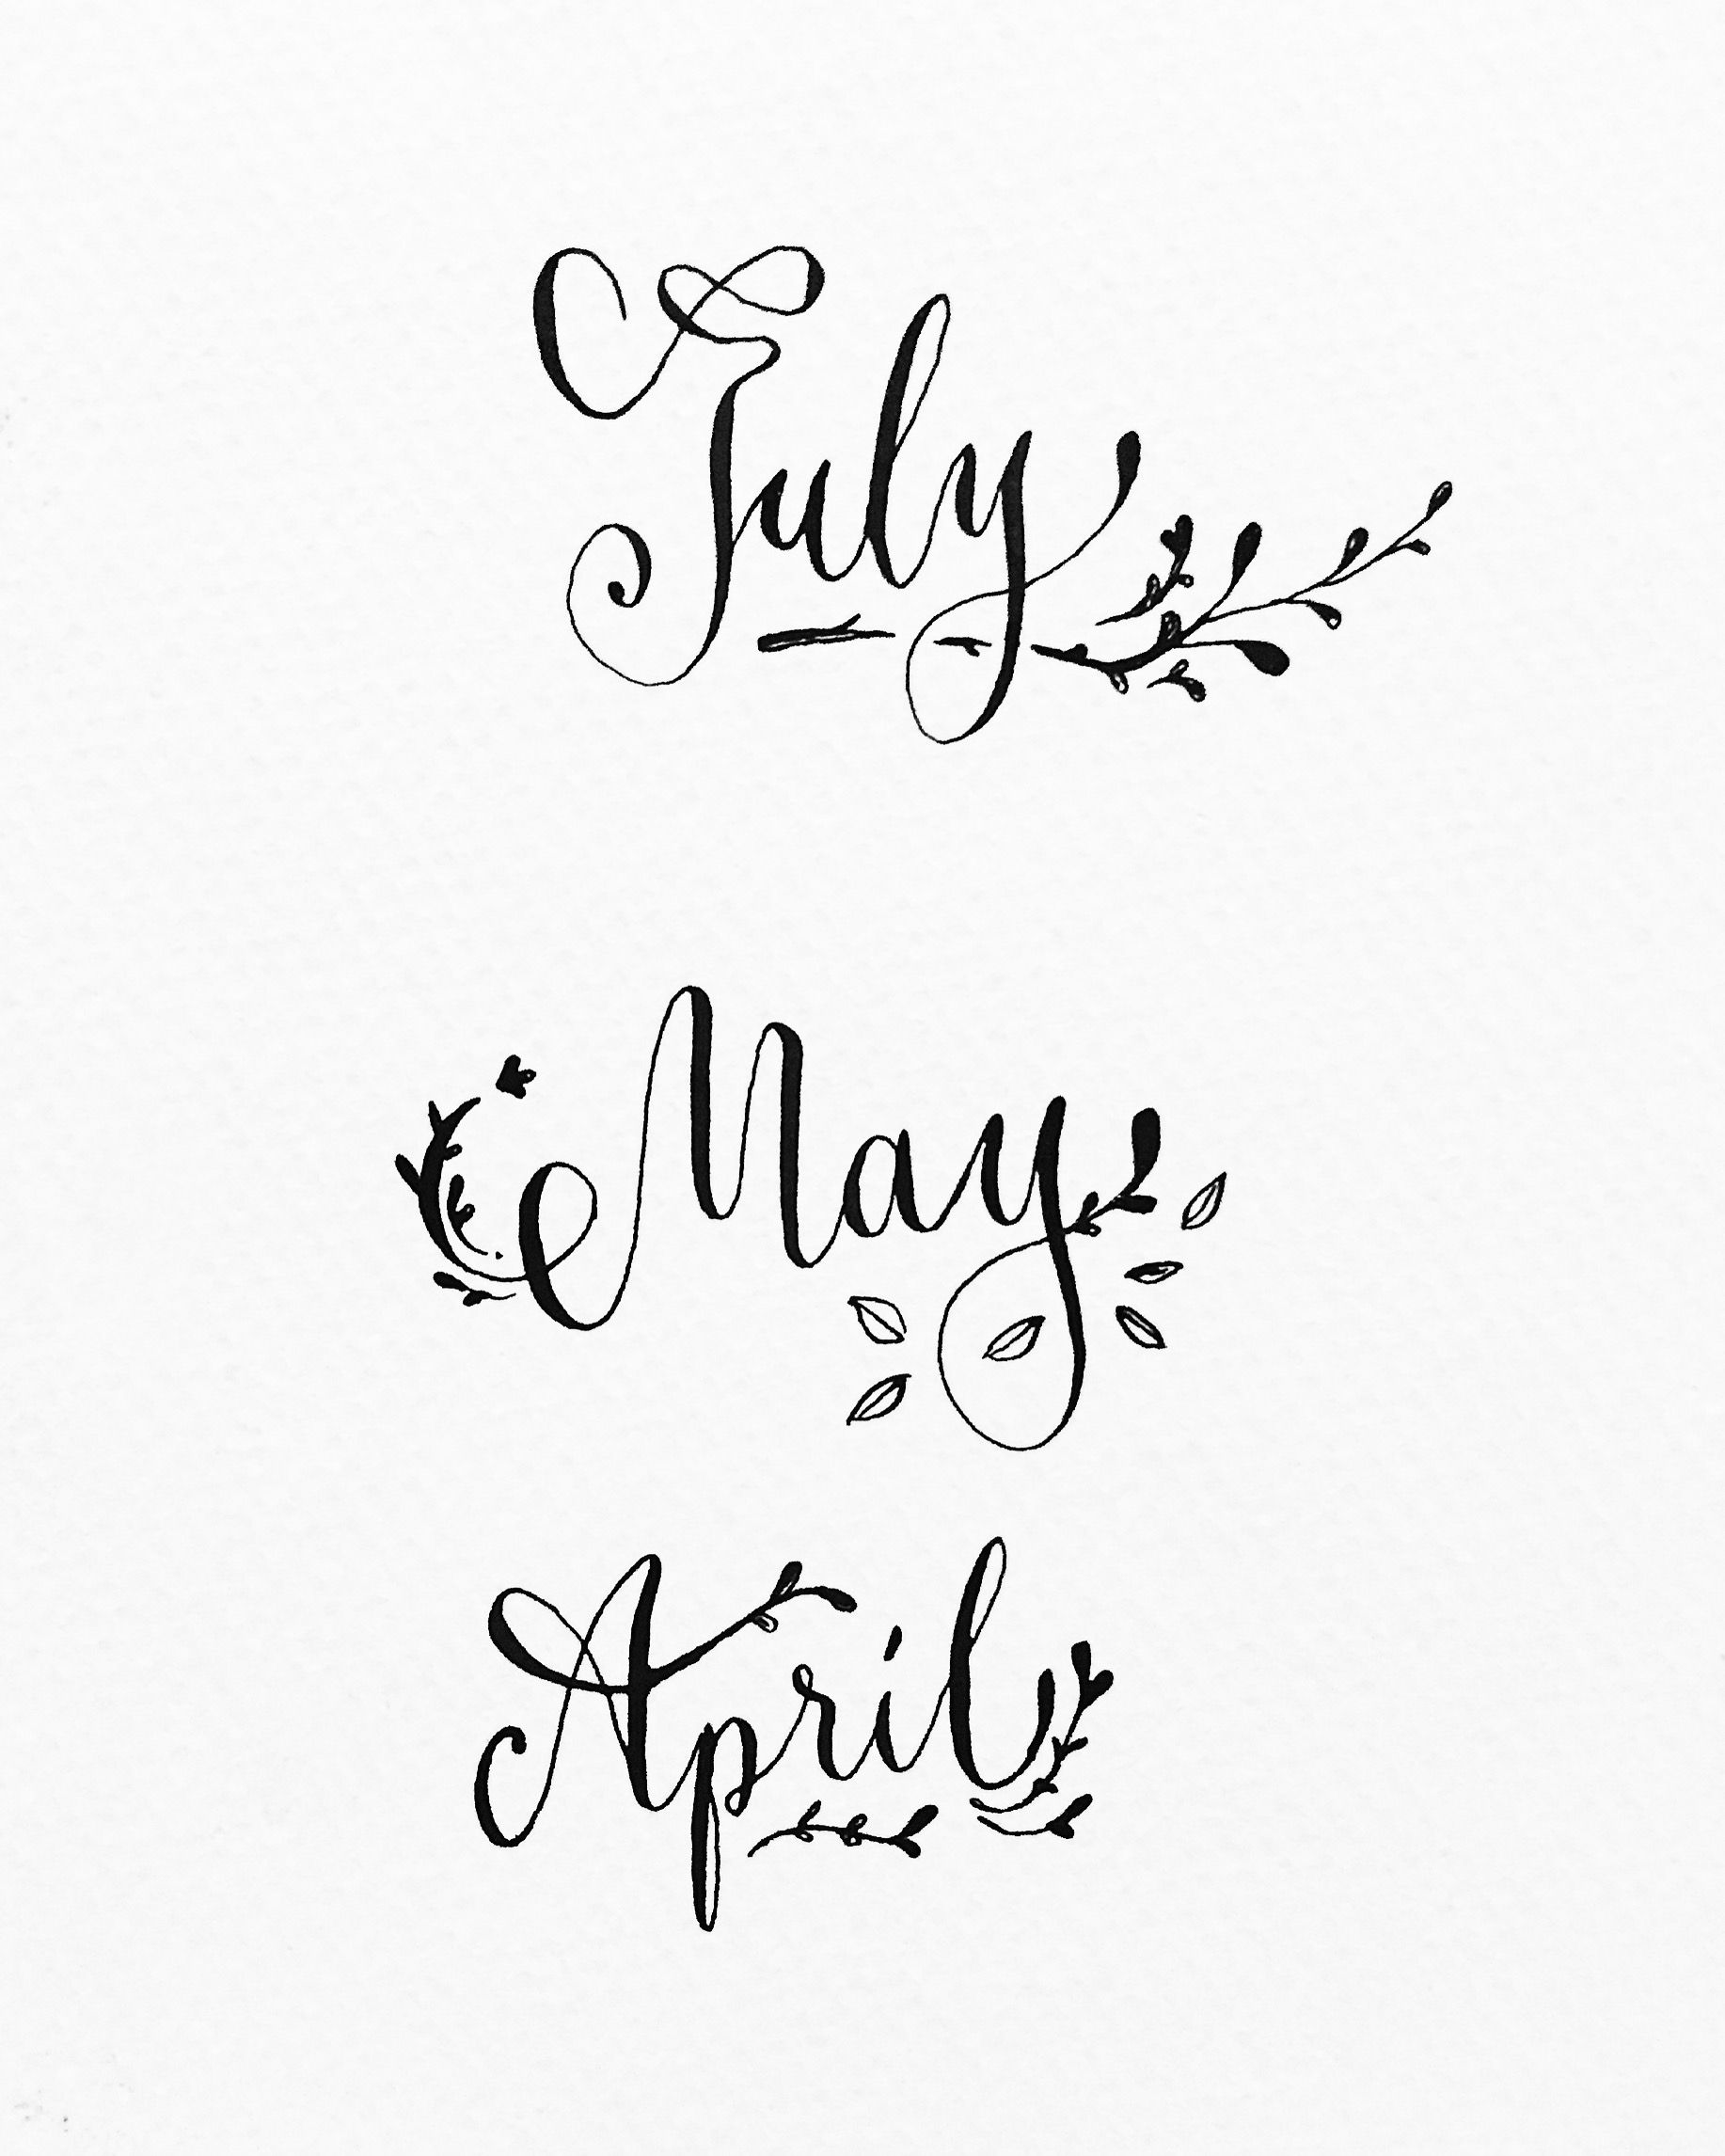 Month July May April Calligraphy Typography